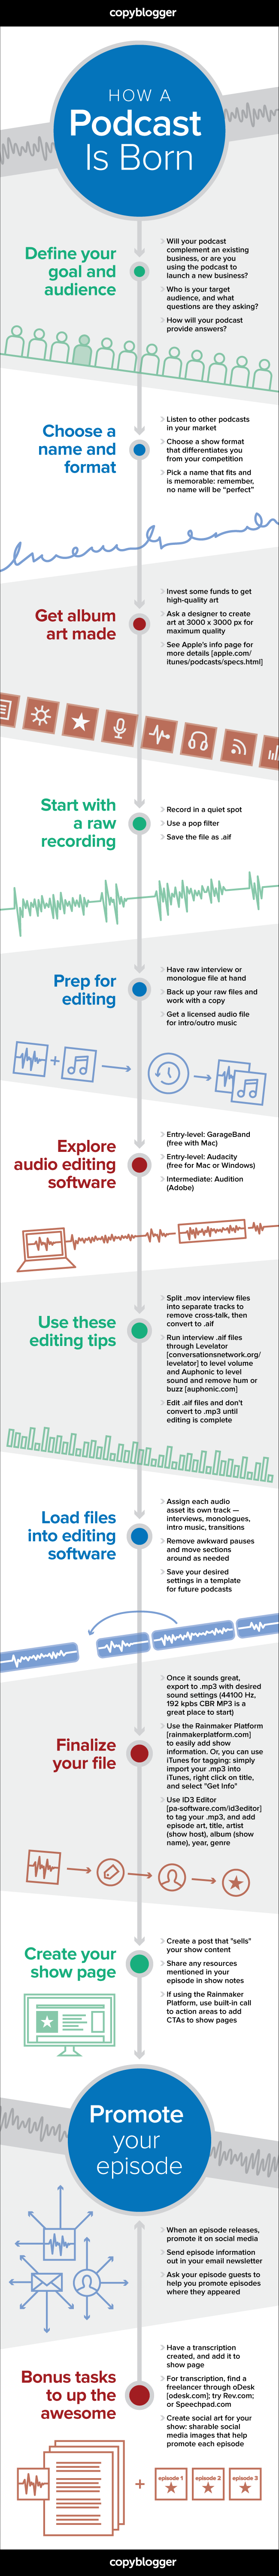 Producing a Podcast: How a Podcast Is Born [Infographic]